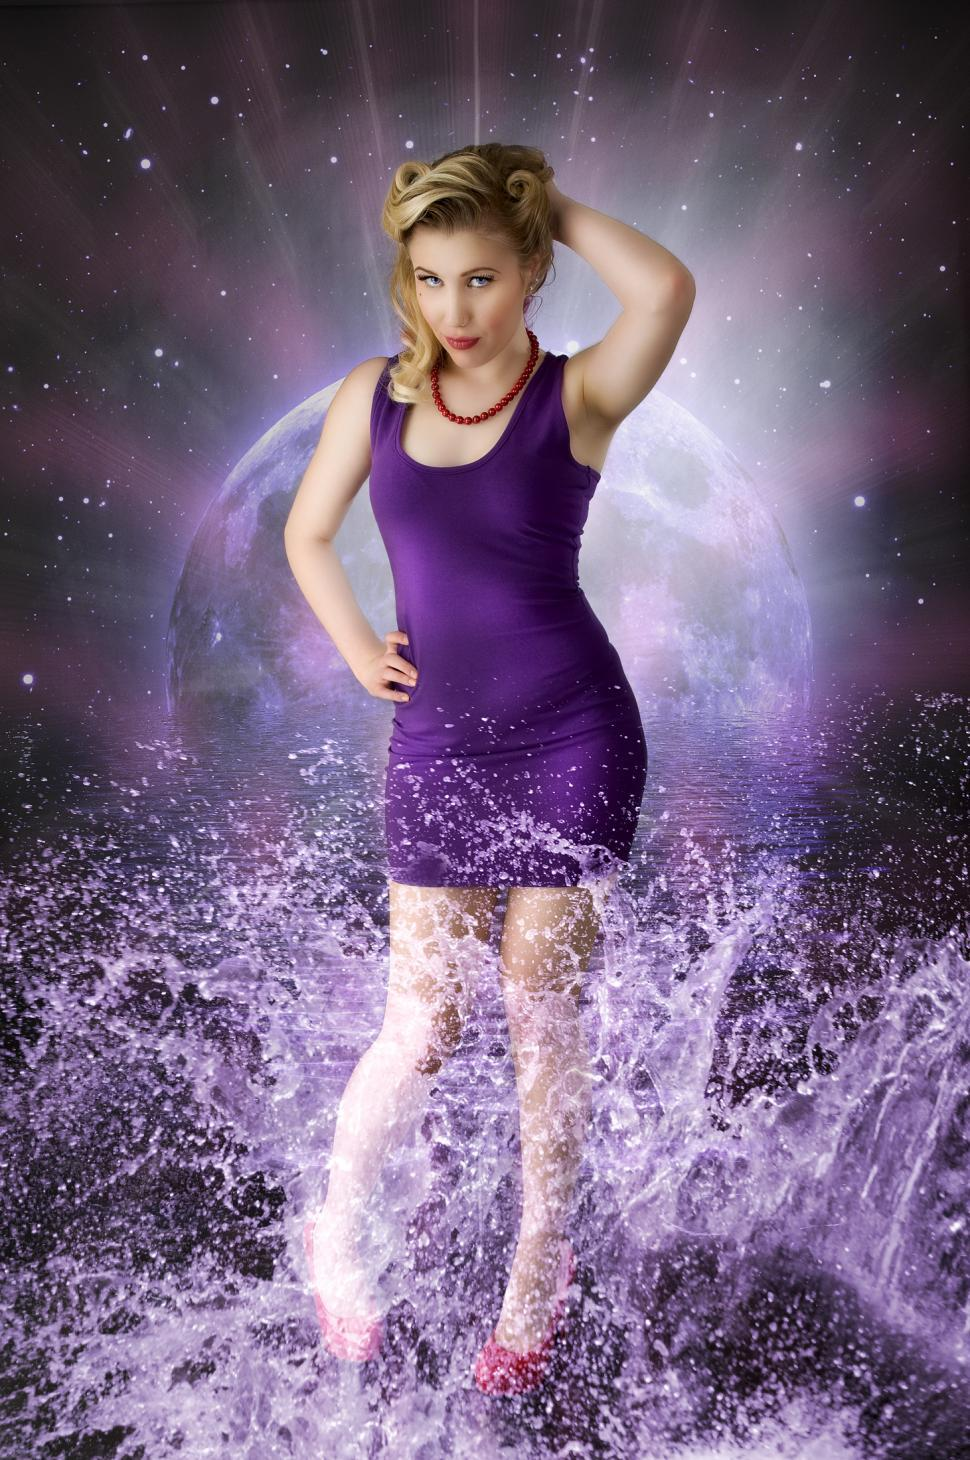 Download Free Stock HD Photo of Woman in space splash scene Online